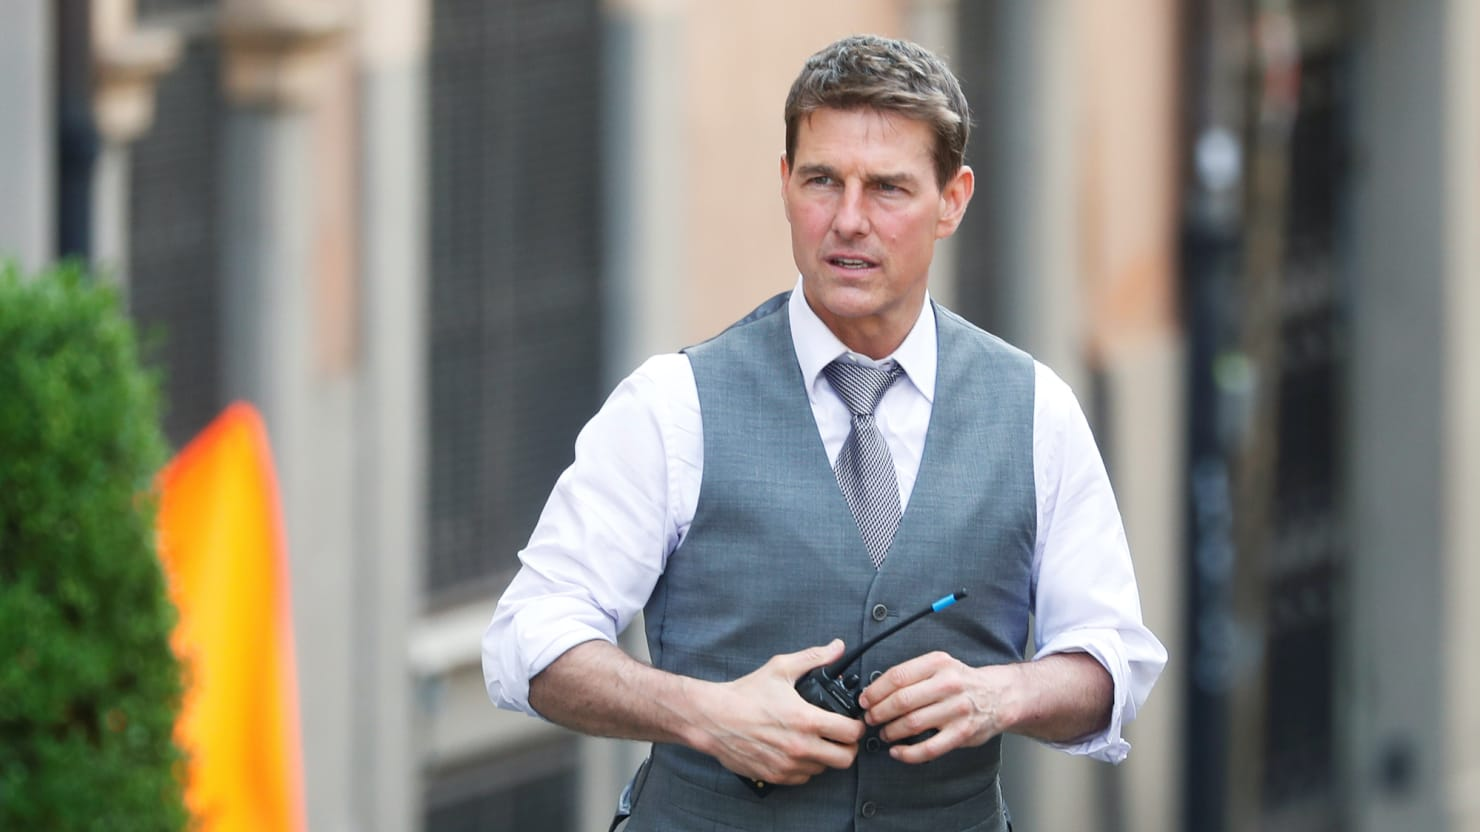 Tom Cruise Screams at Film Crew for COVID Breach in Leaked Audio